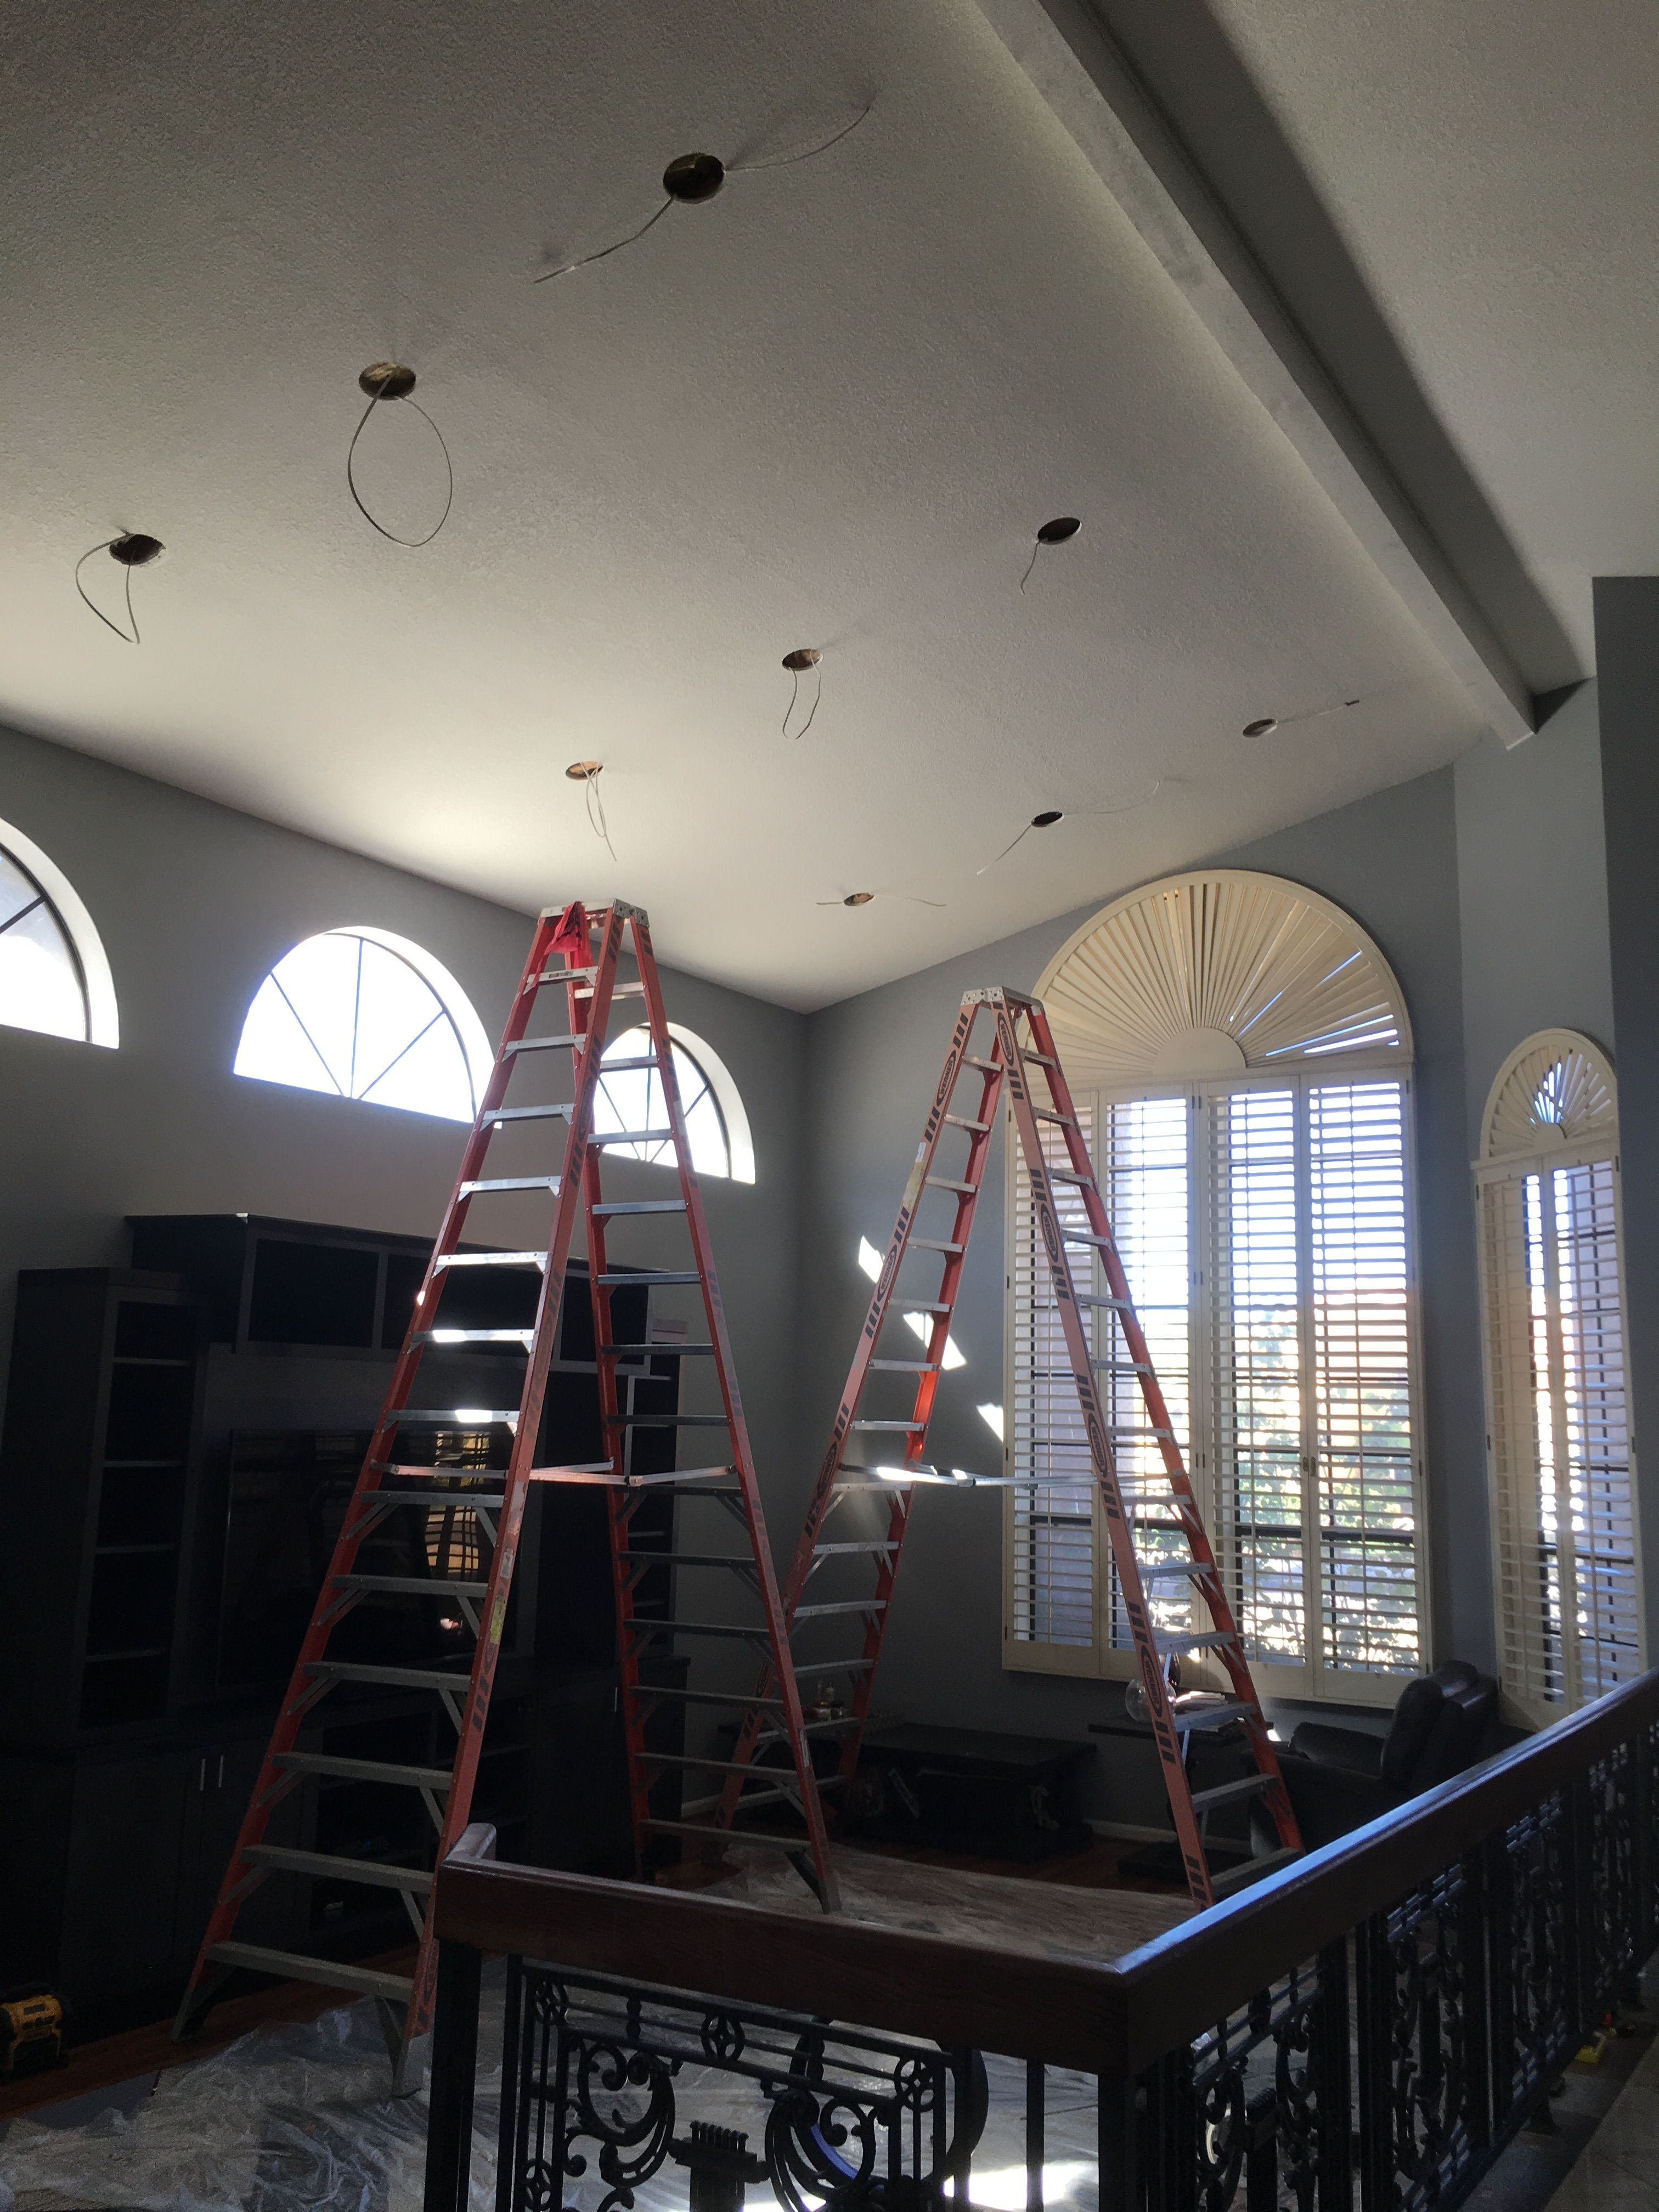 AZ Recessed Lighting Installation | Family Living Room Kitchen Dining Room  Master Bedroom | LED Lights | Can Lights | Pot Lights | Remodel | Low  Voltage ...